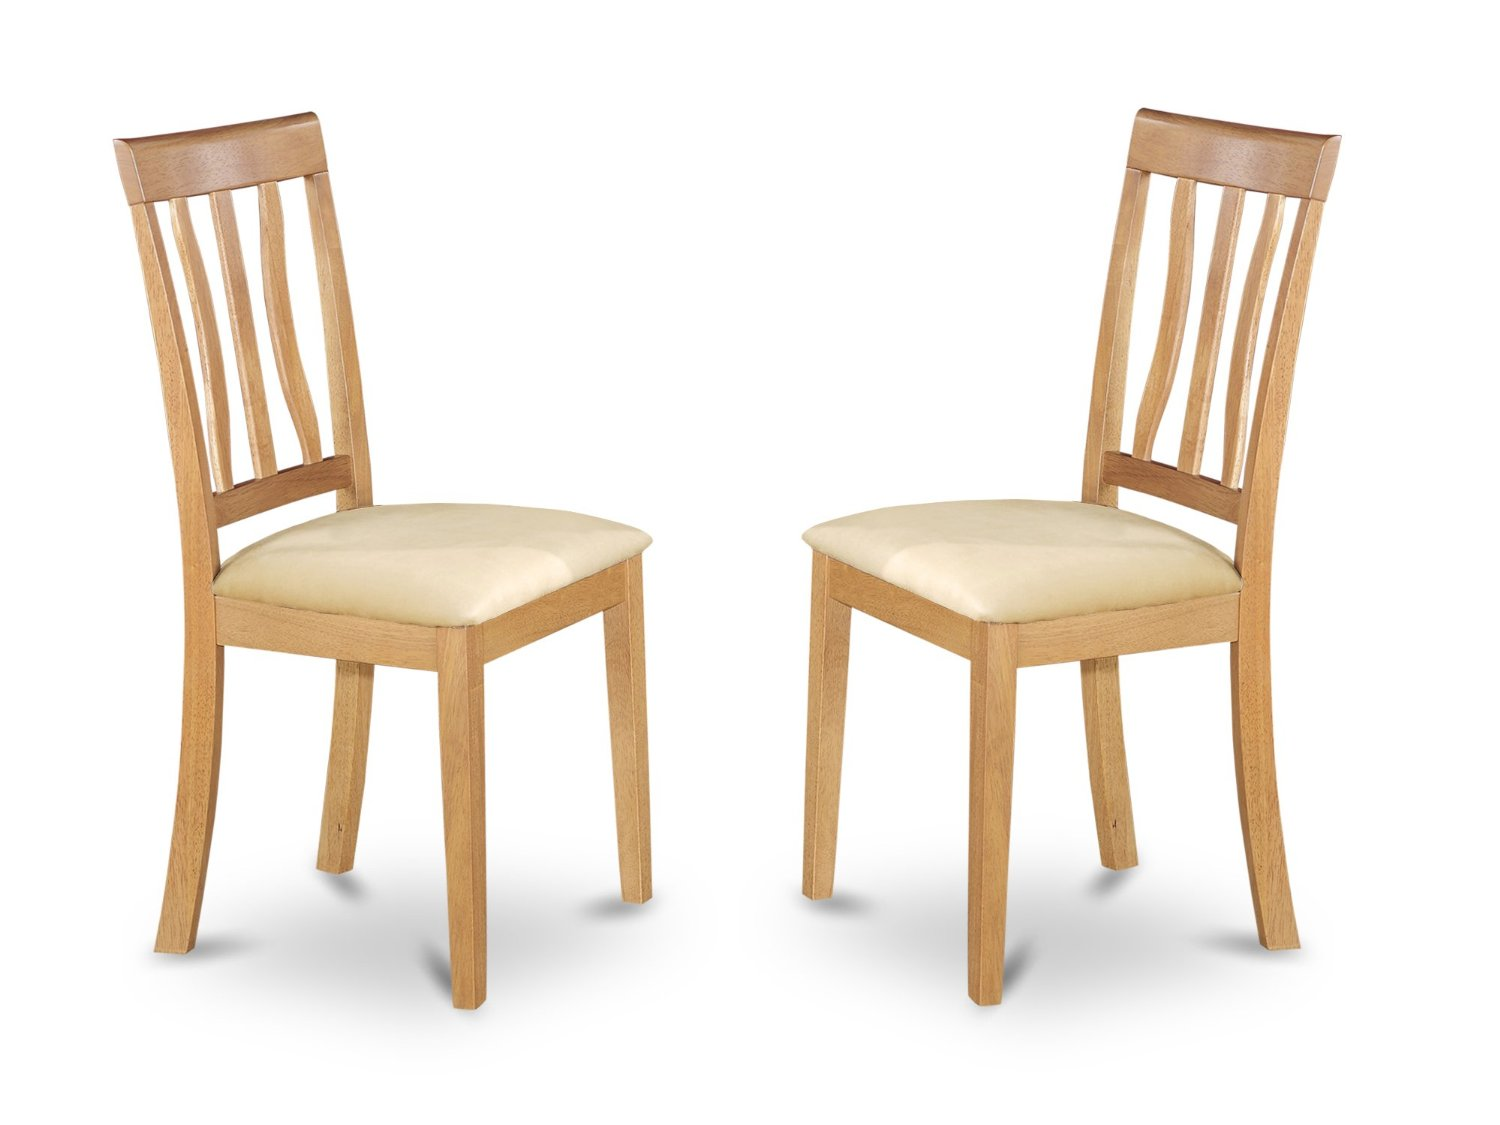 East West Furniture ANC-OAK-C Dining Chair Set with Cushion Seat, Oak Finish, Set of 2